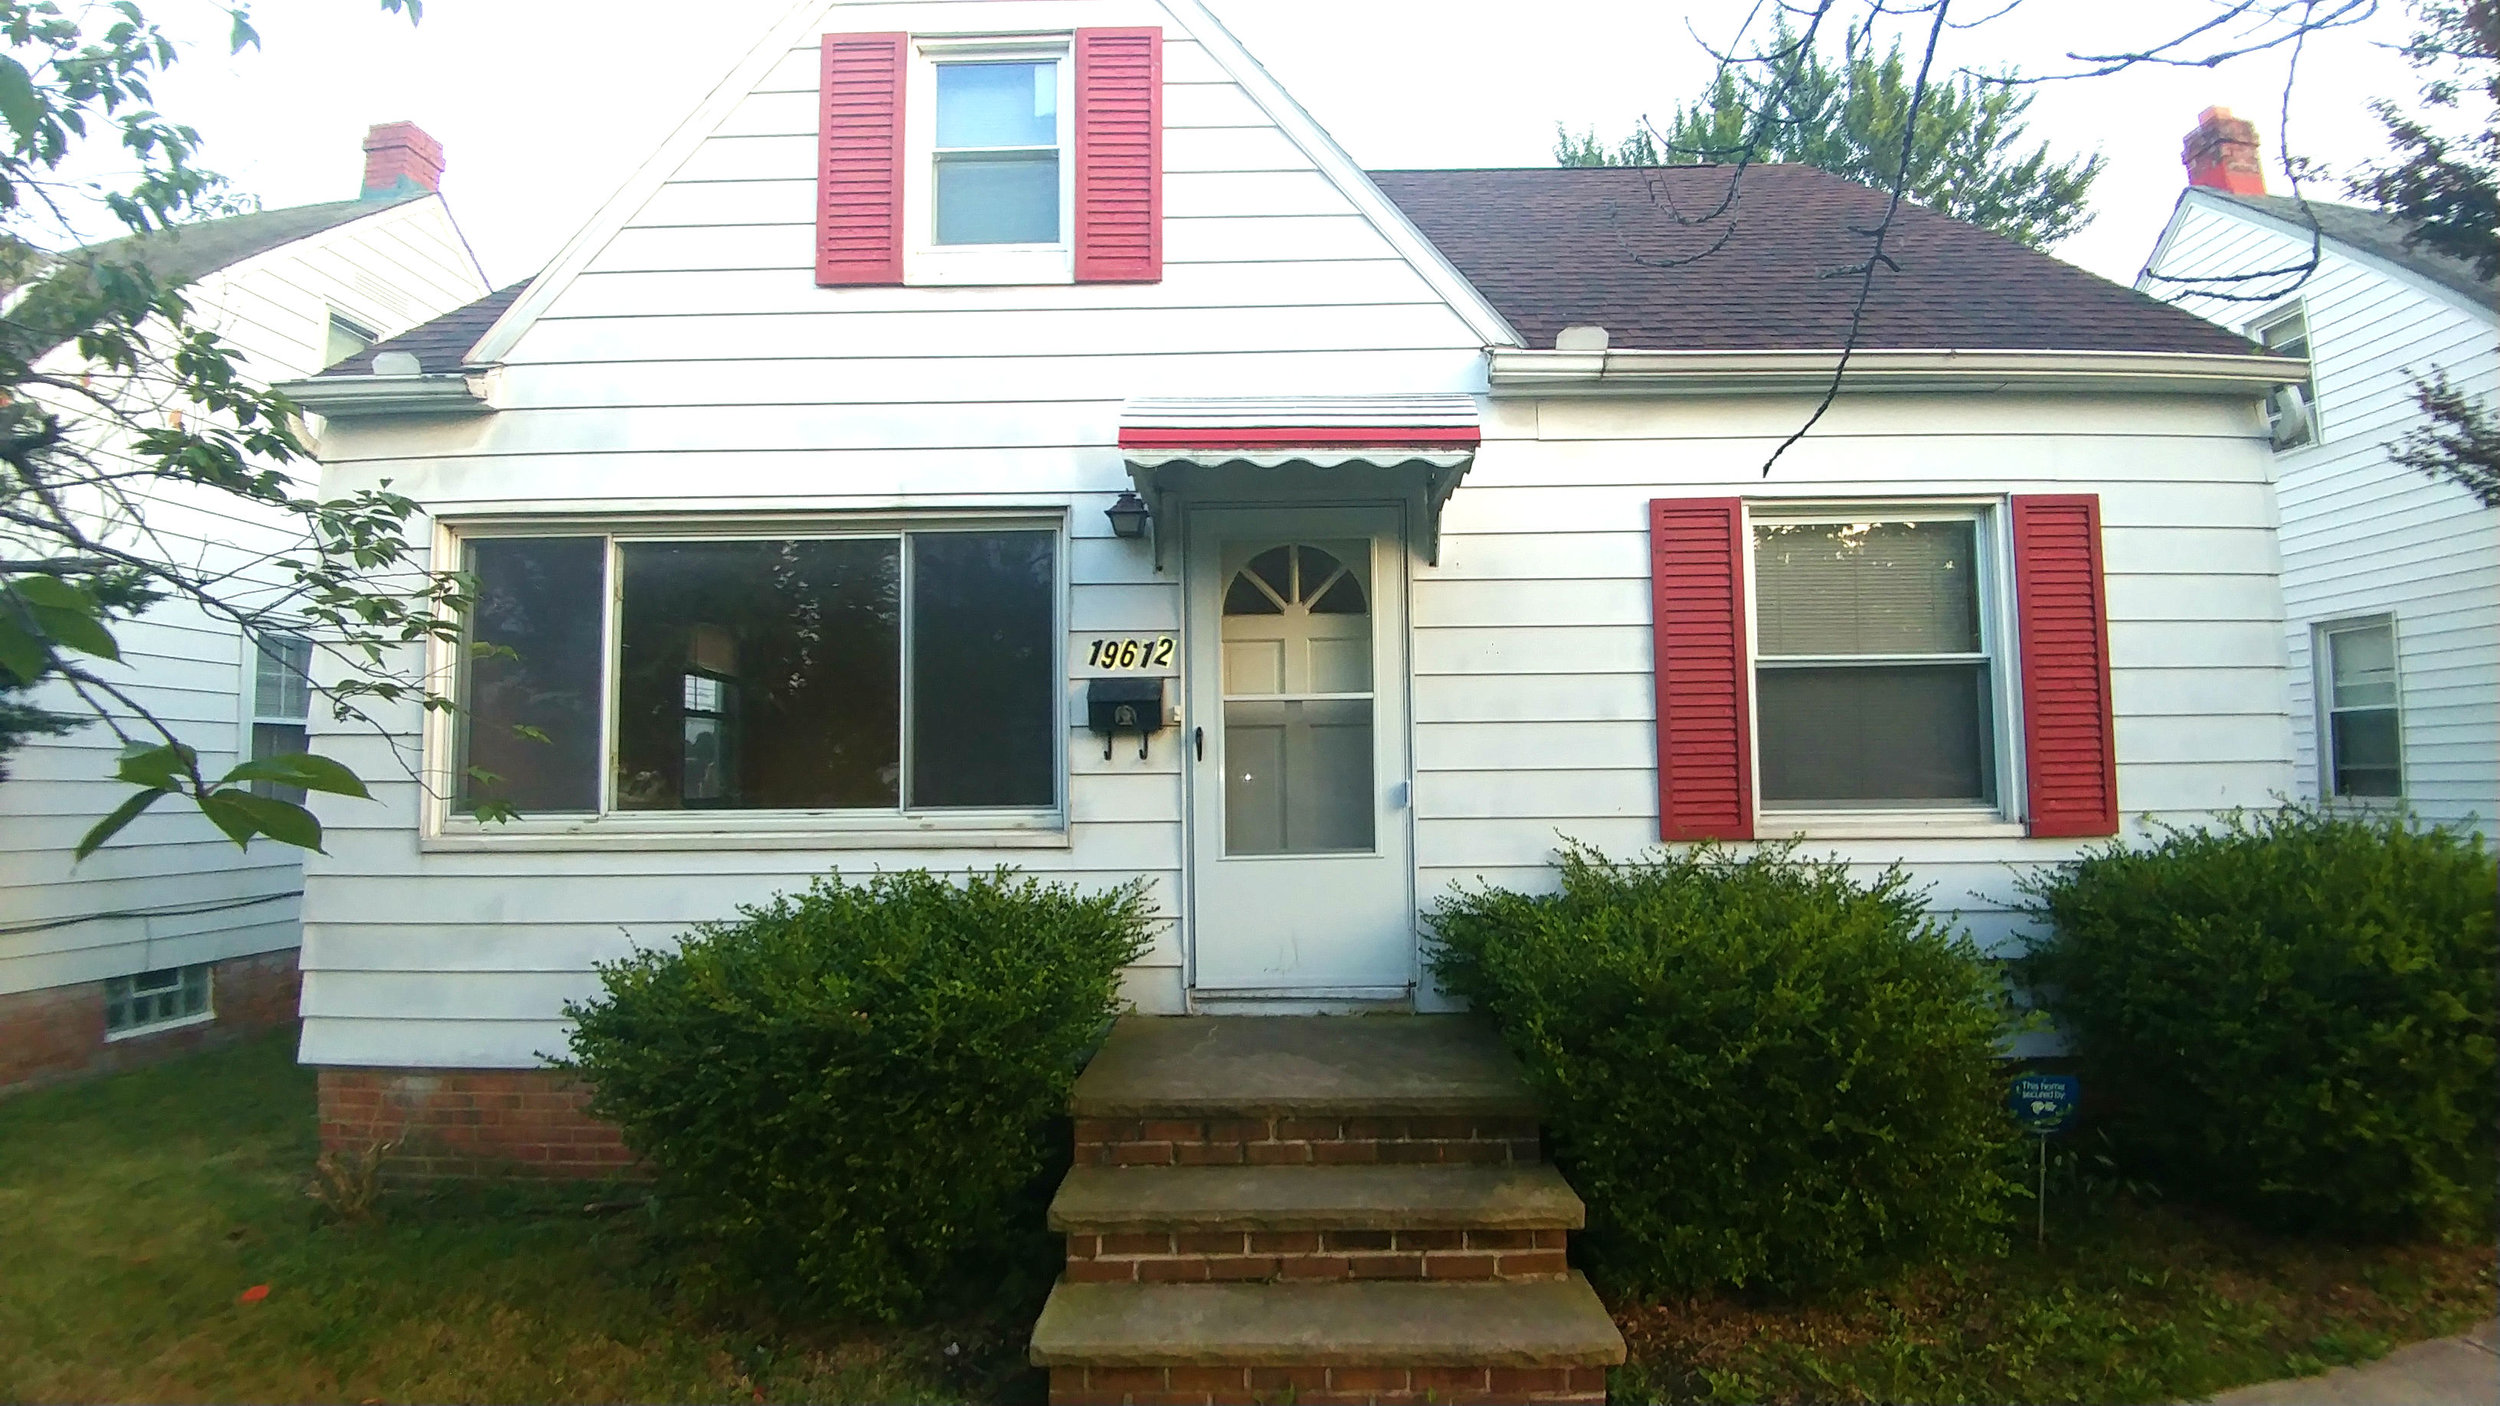 19612 Beverly Ave., Maple Hts. | 3 bed 2 bath | 1,820 Sq. Ft. | $39,000